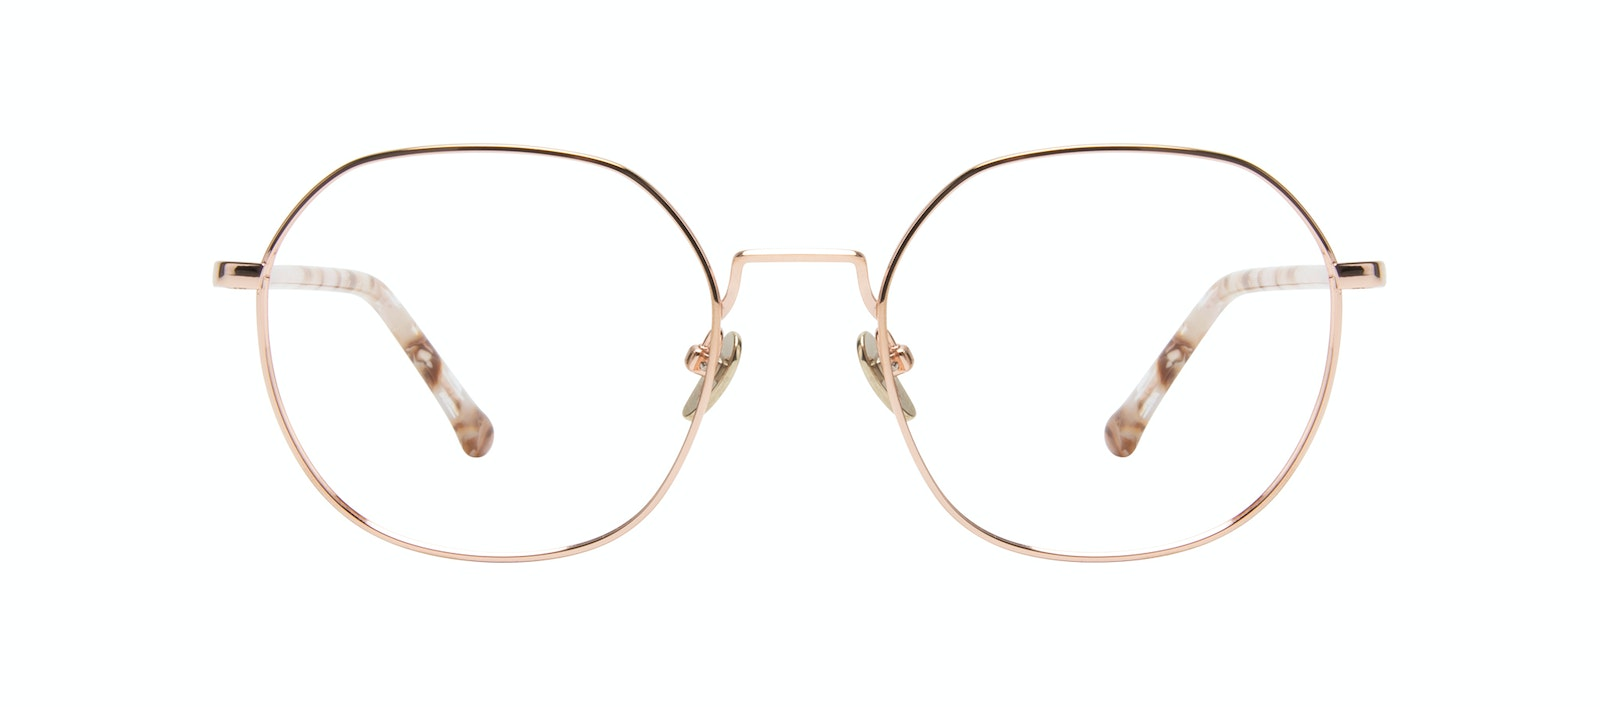 Affordable Fashion Glasses Round Eyeglasses Women Coco Rose Gold Front